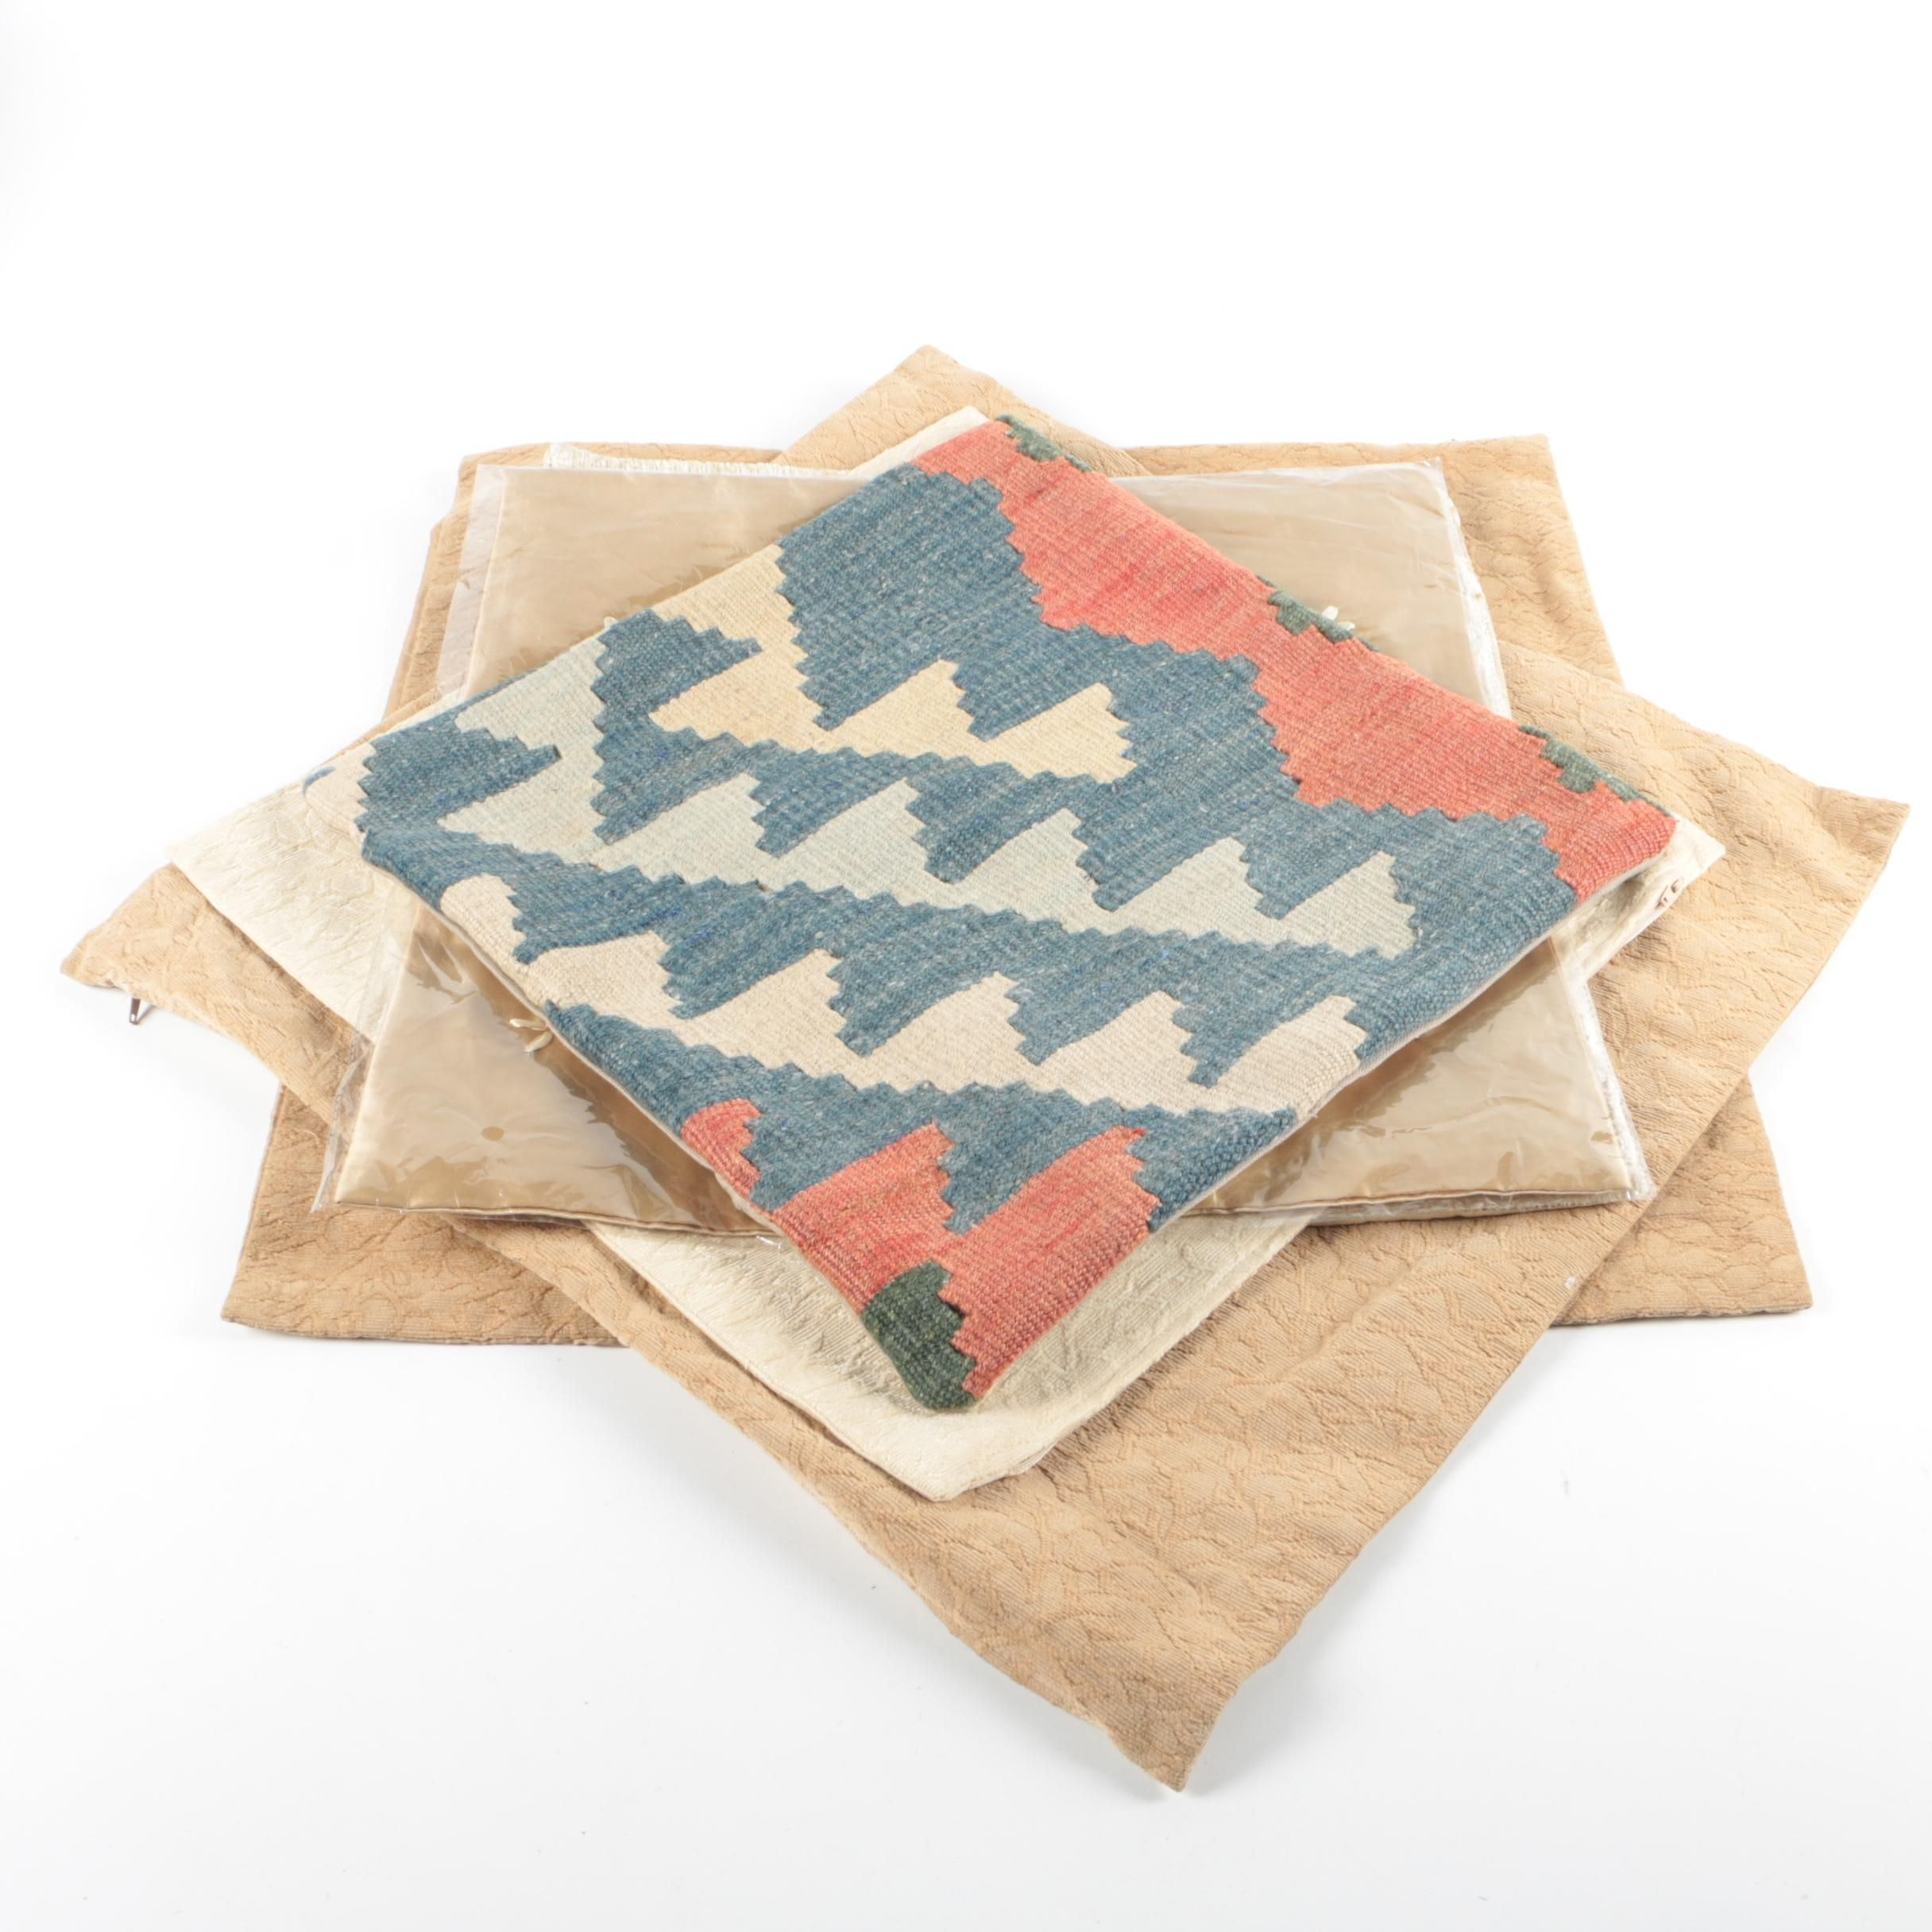 Handwoven Kilim Pillow Cover with Silk and Woven Covers